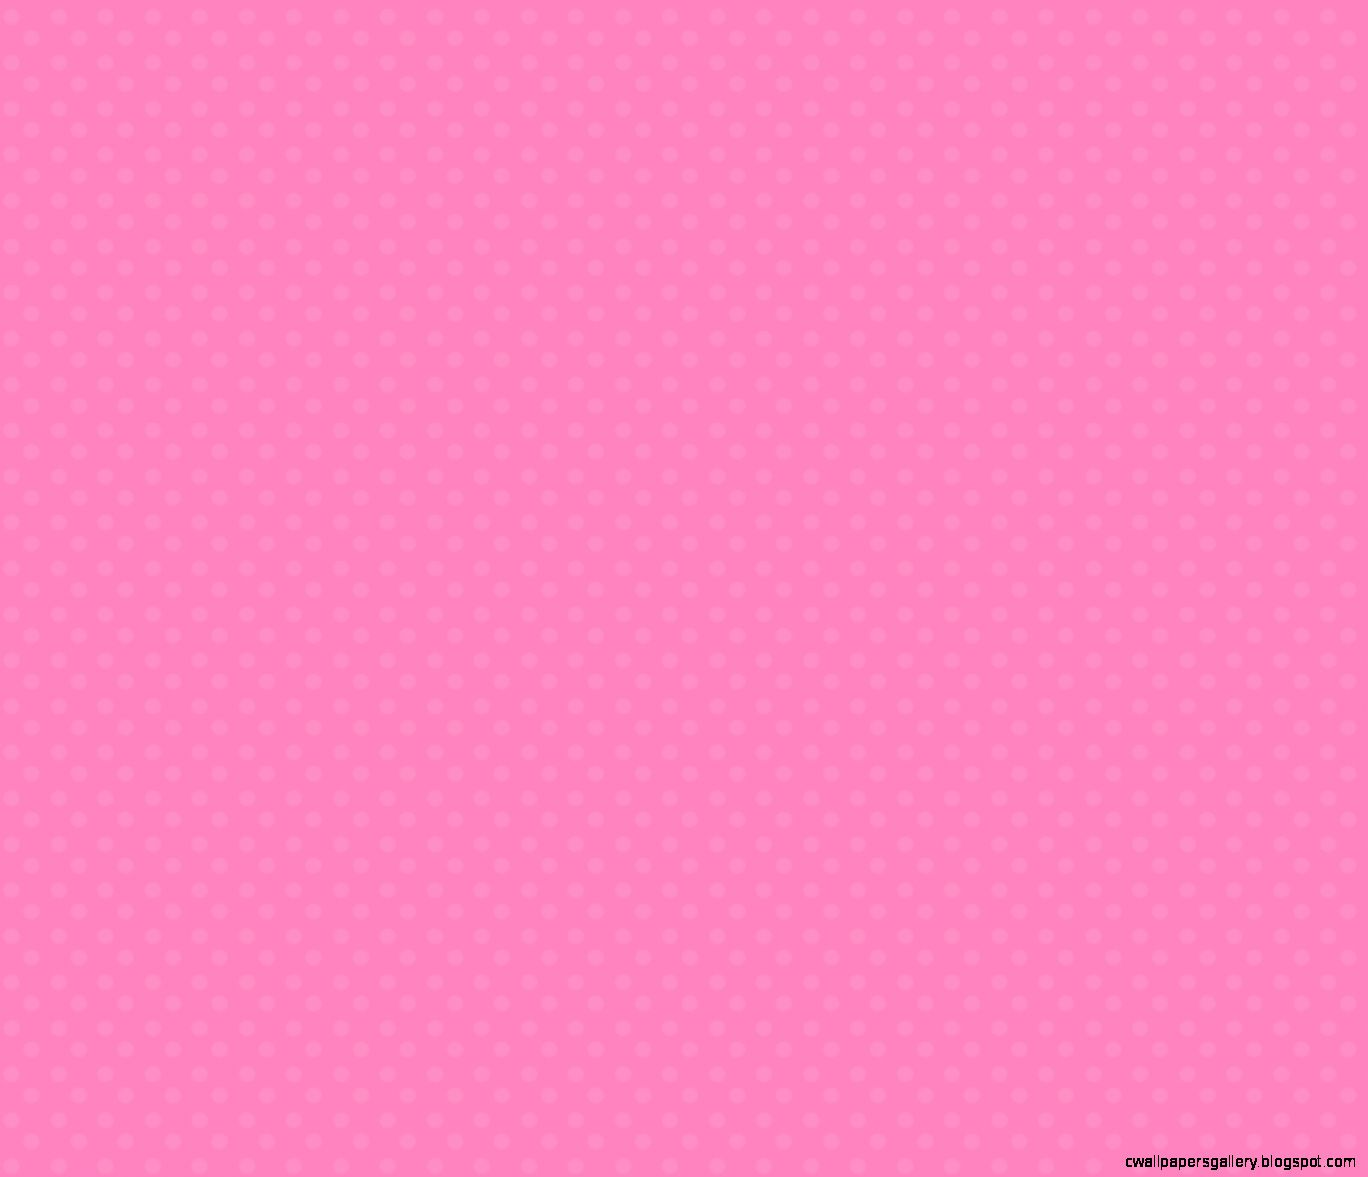 tumblr cute pink backgrounds - photo #3